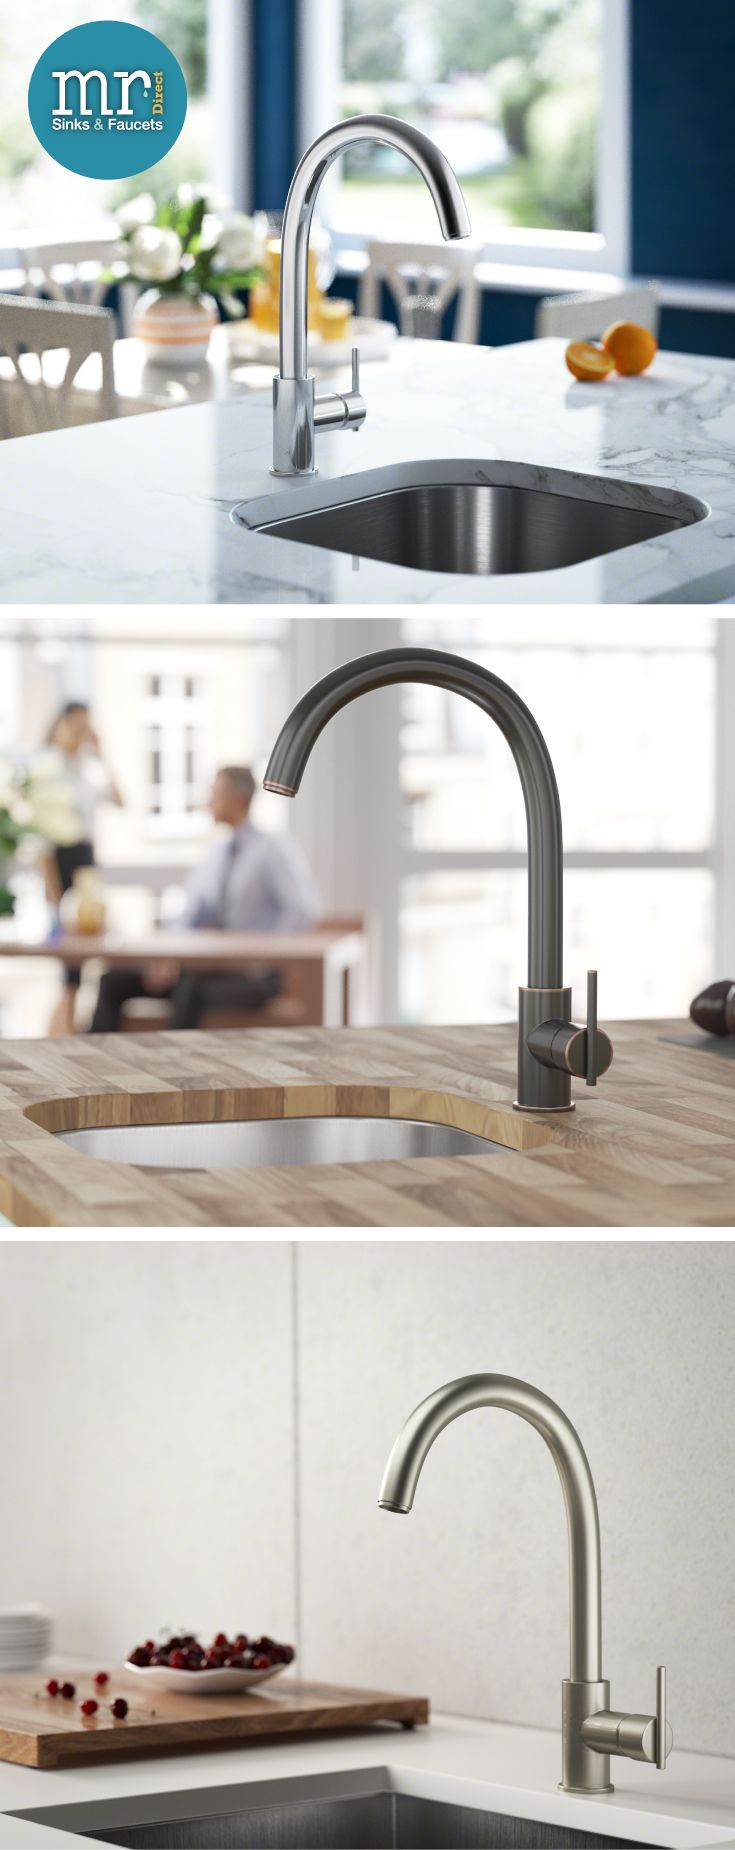 Bar faucets offered in a variety of finishes and styles to match every kitchen decor